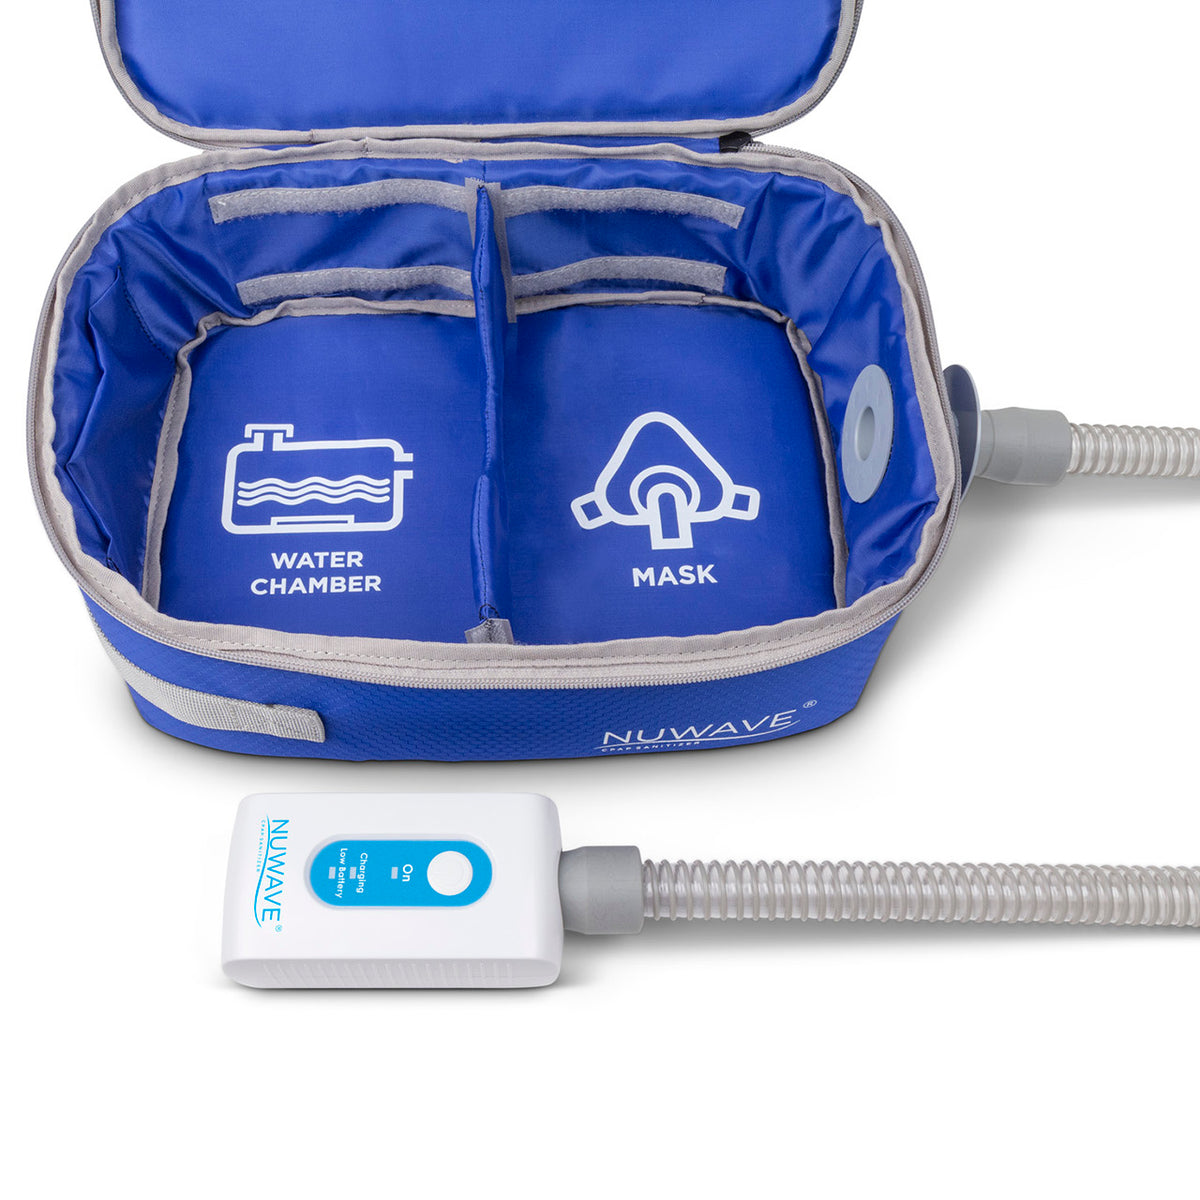 Front view of travel blue bag and NUWAVE Cleaner by Western Medical Inc.